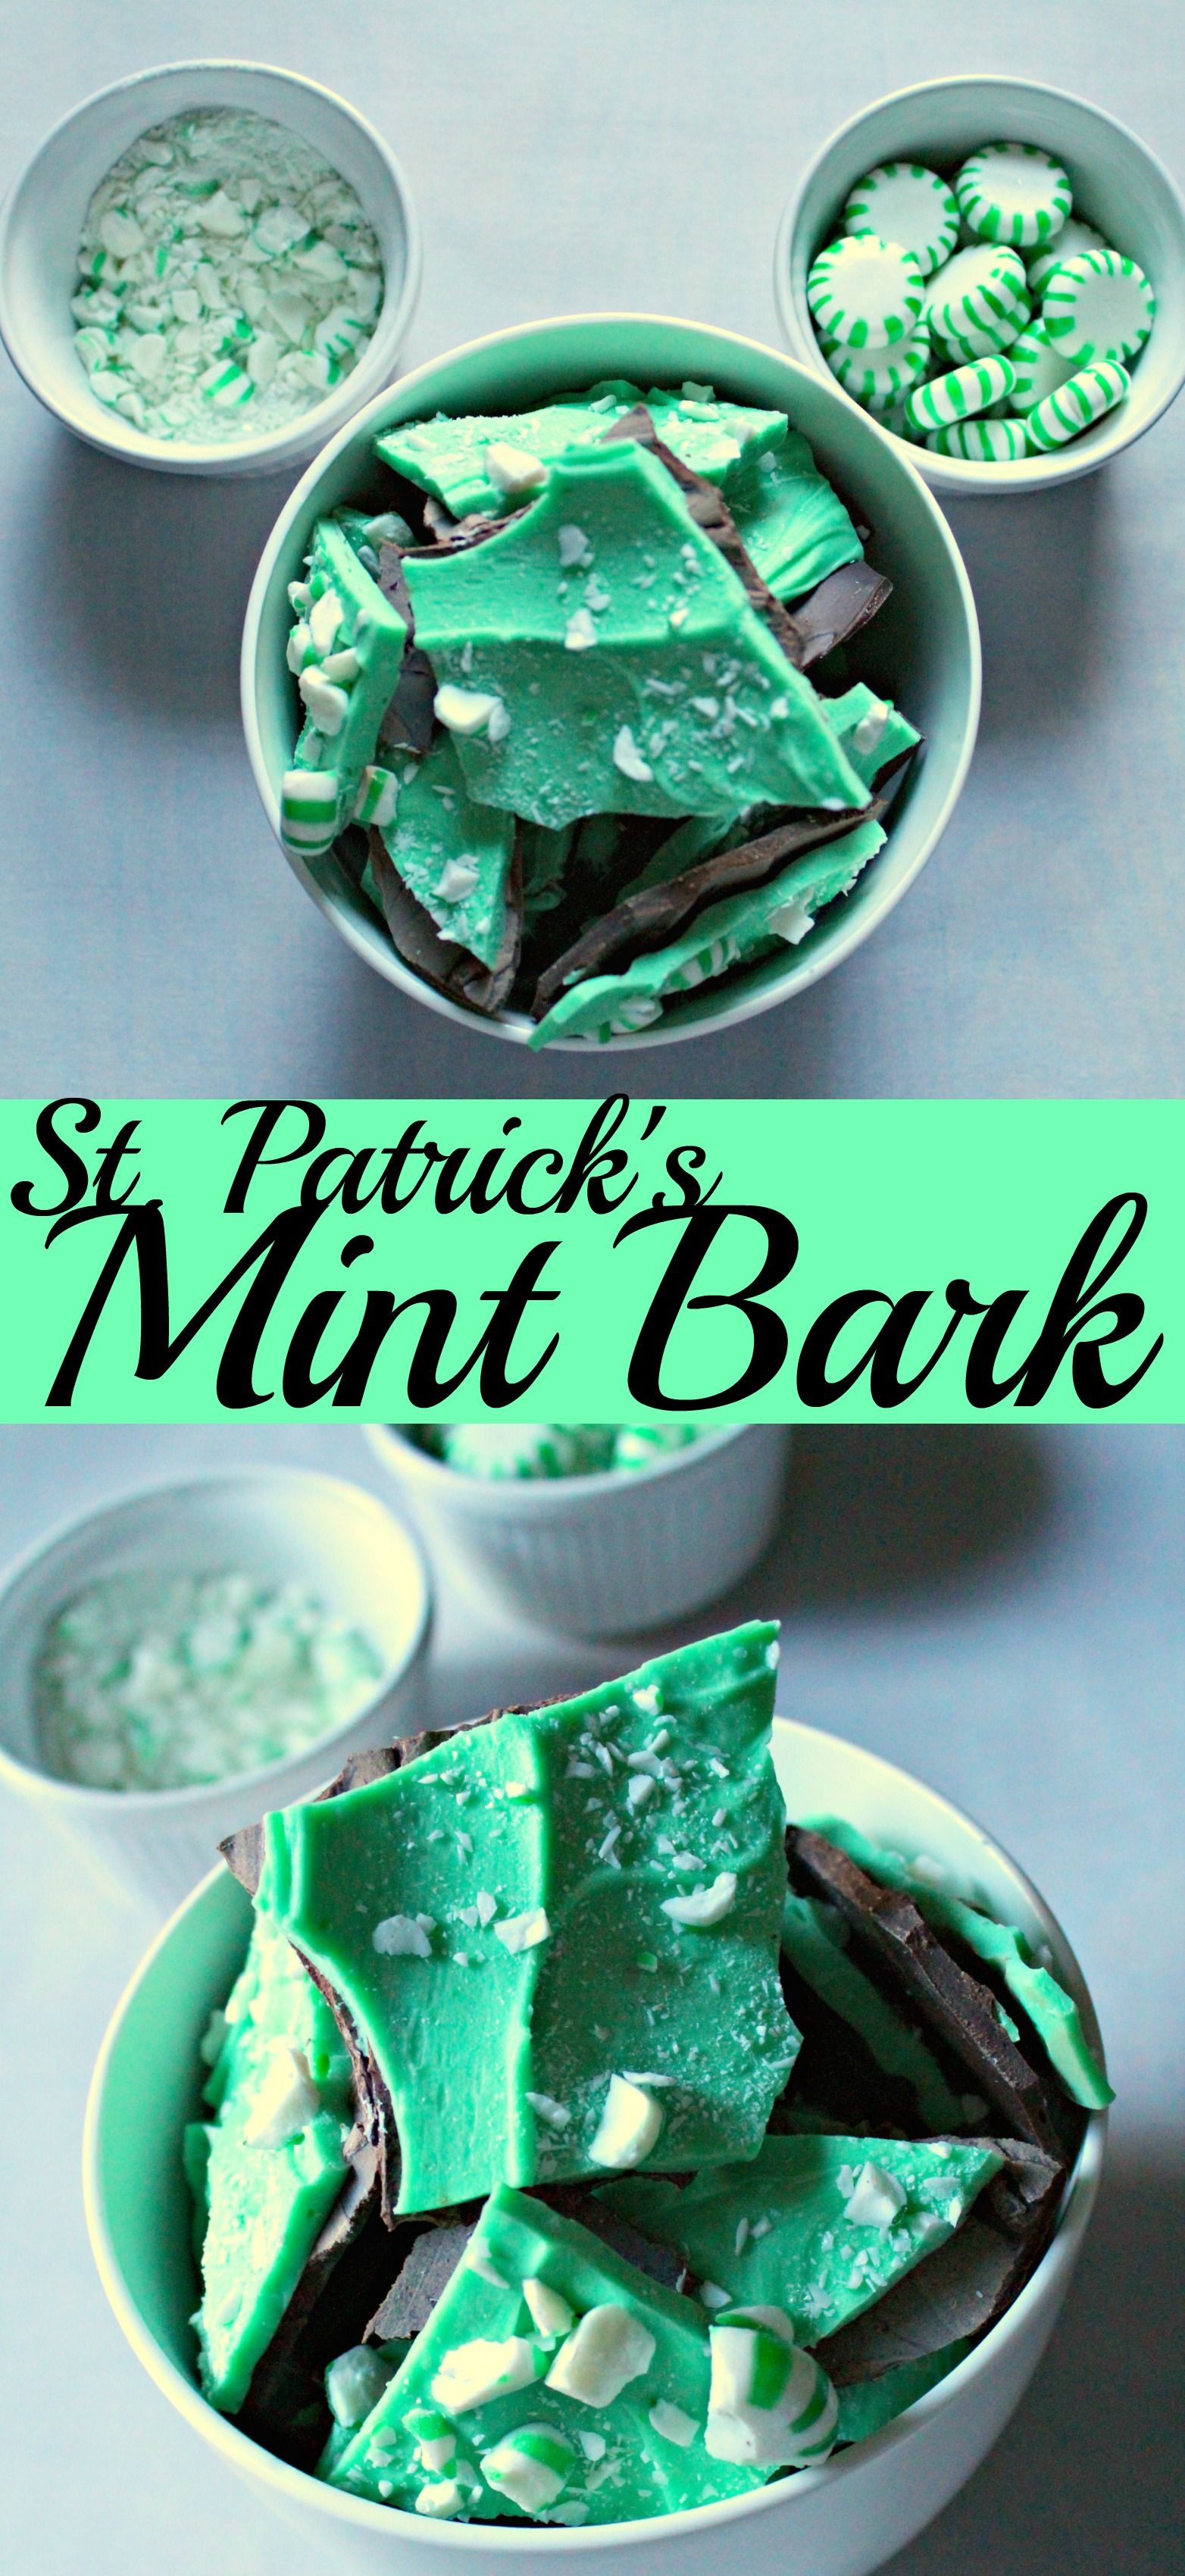 St Patrick's mint bark 7